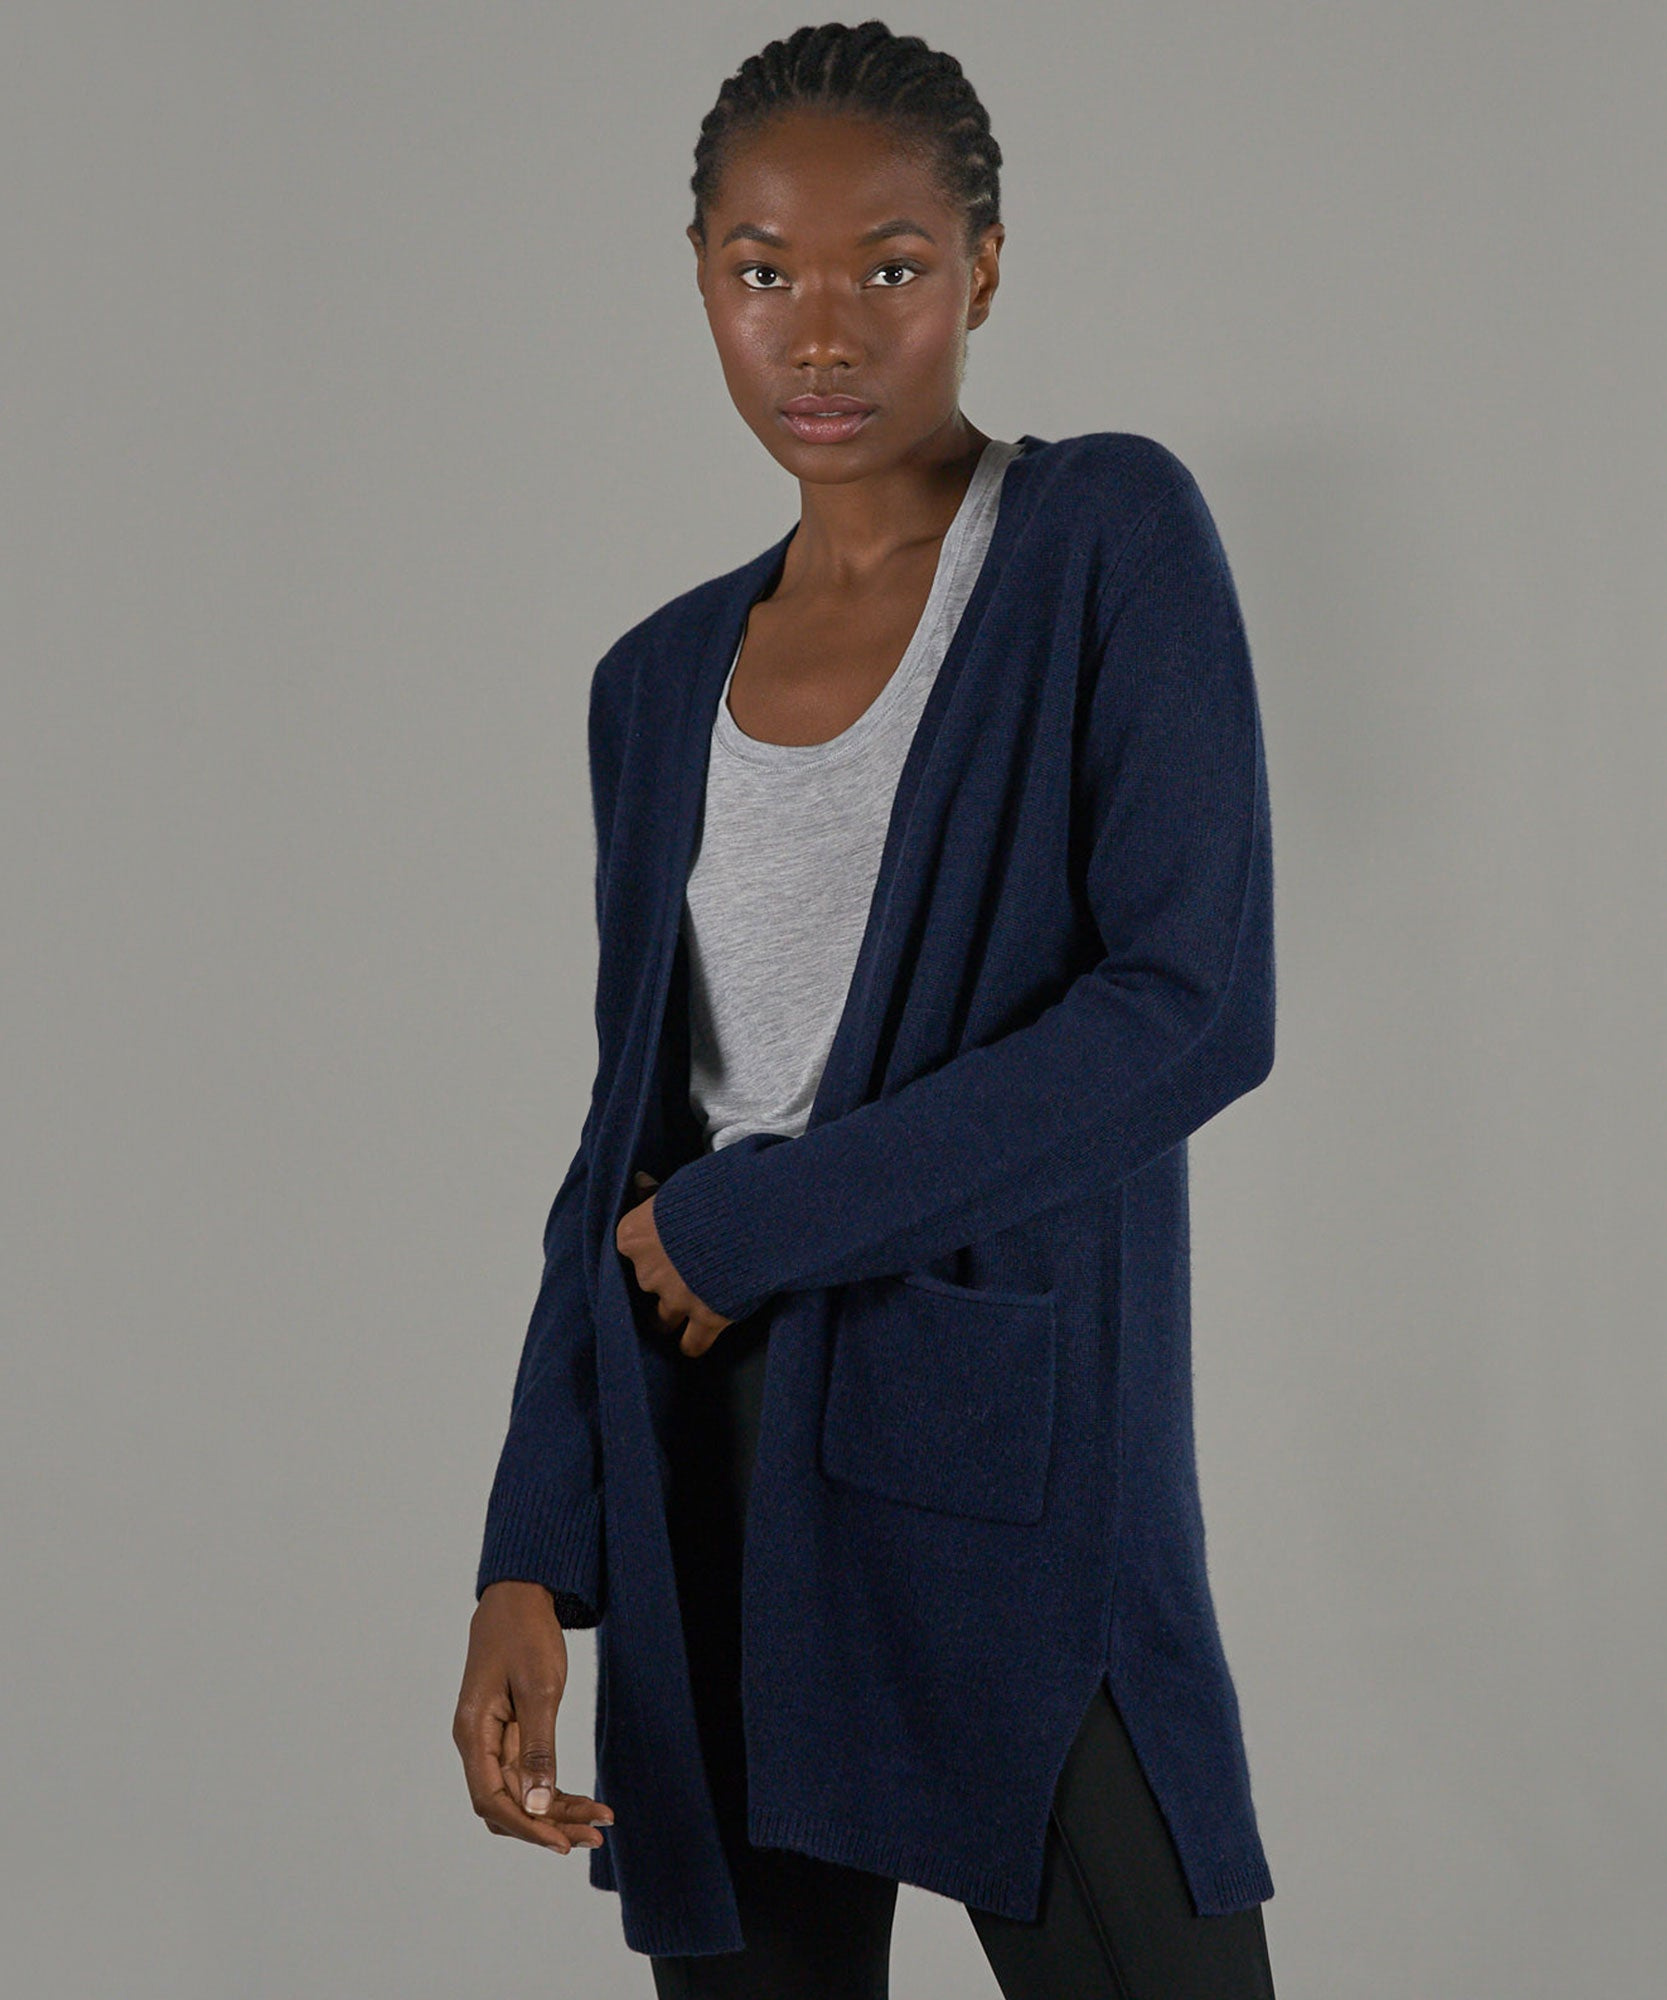 Midnight Cashmere Cardigan - Women's Luxe Sweater by ATM Anthony Thomas Melillo